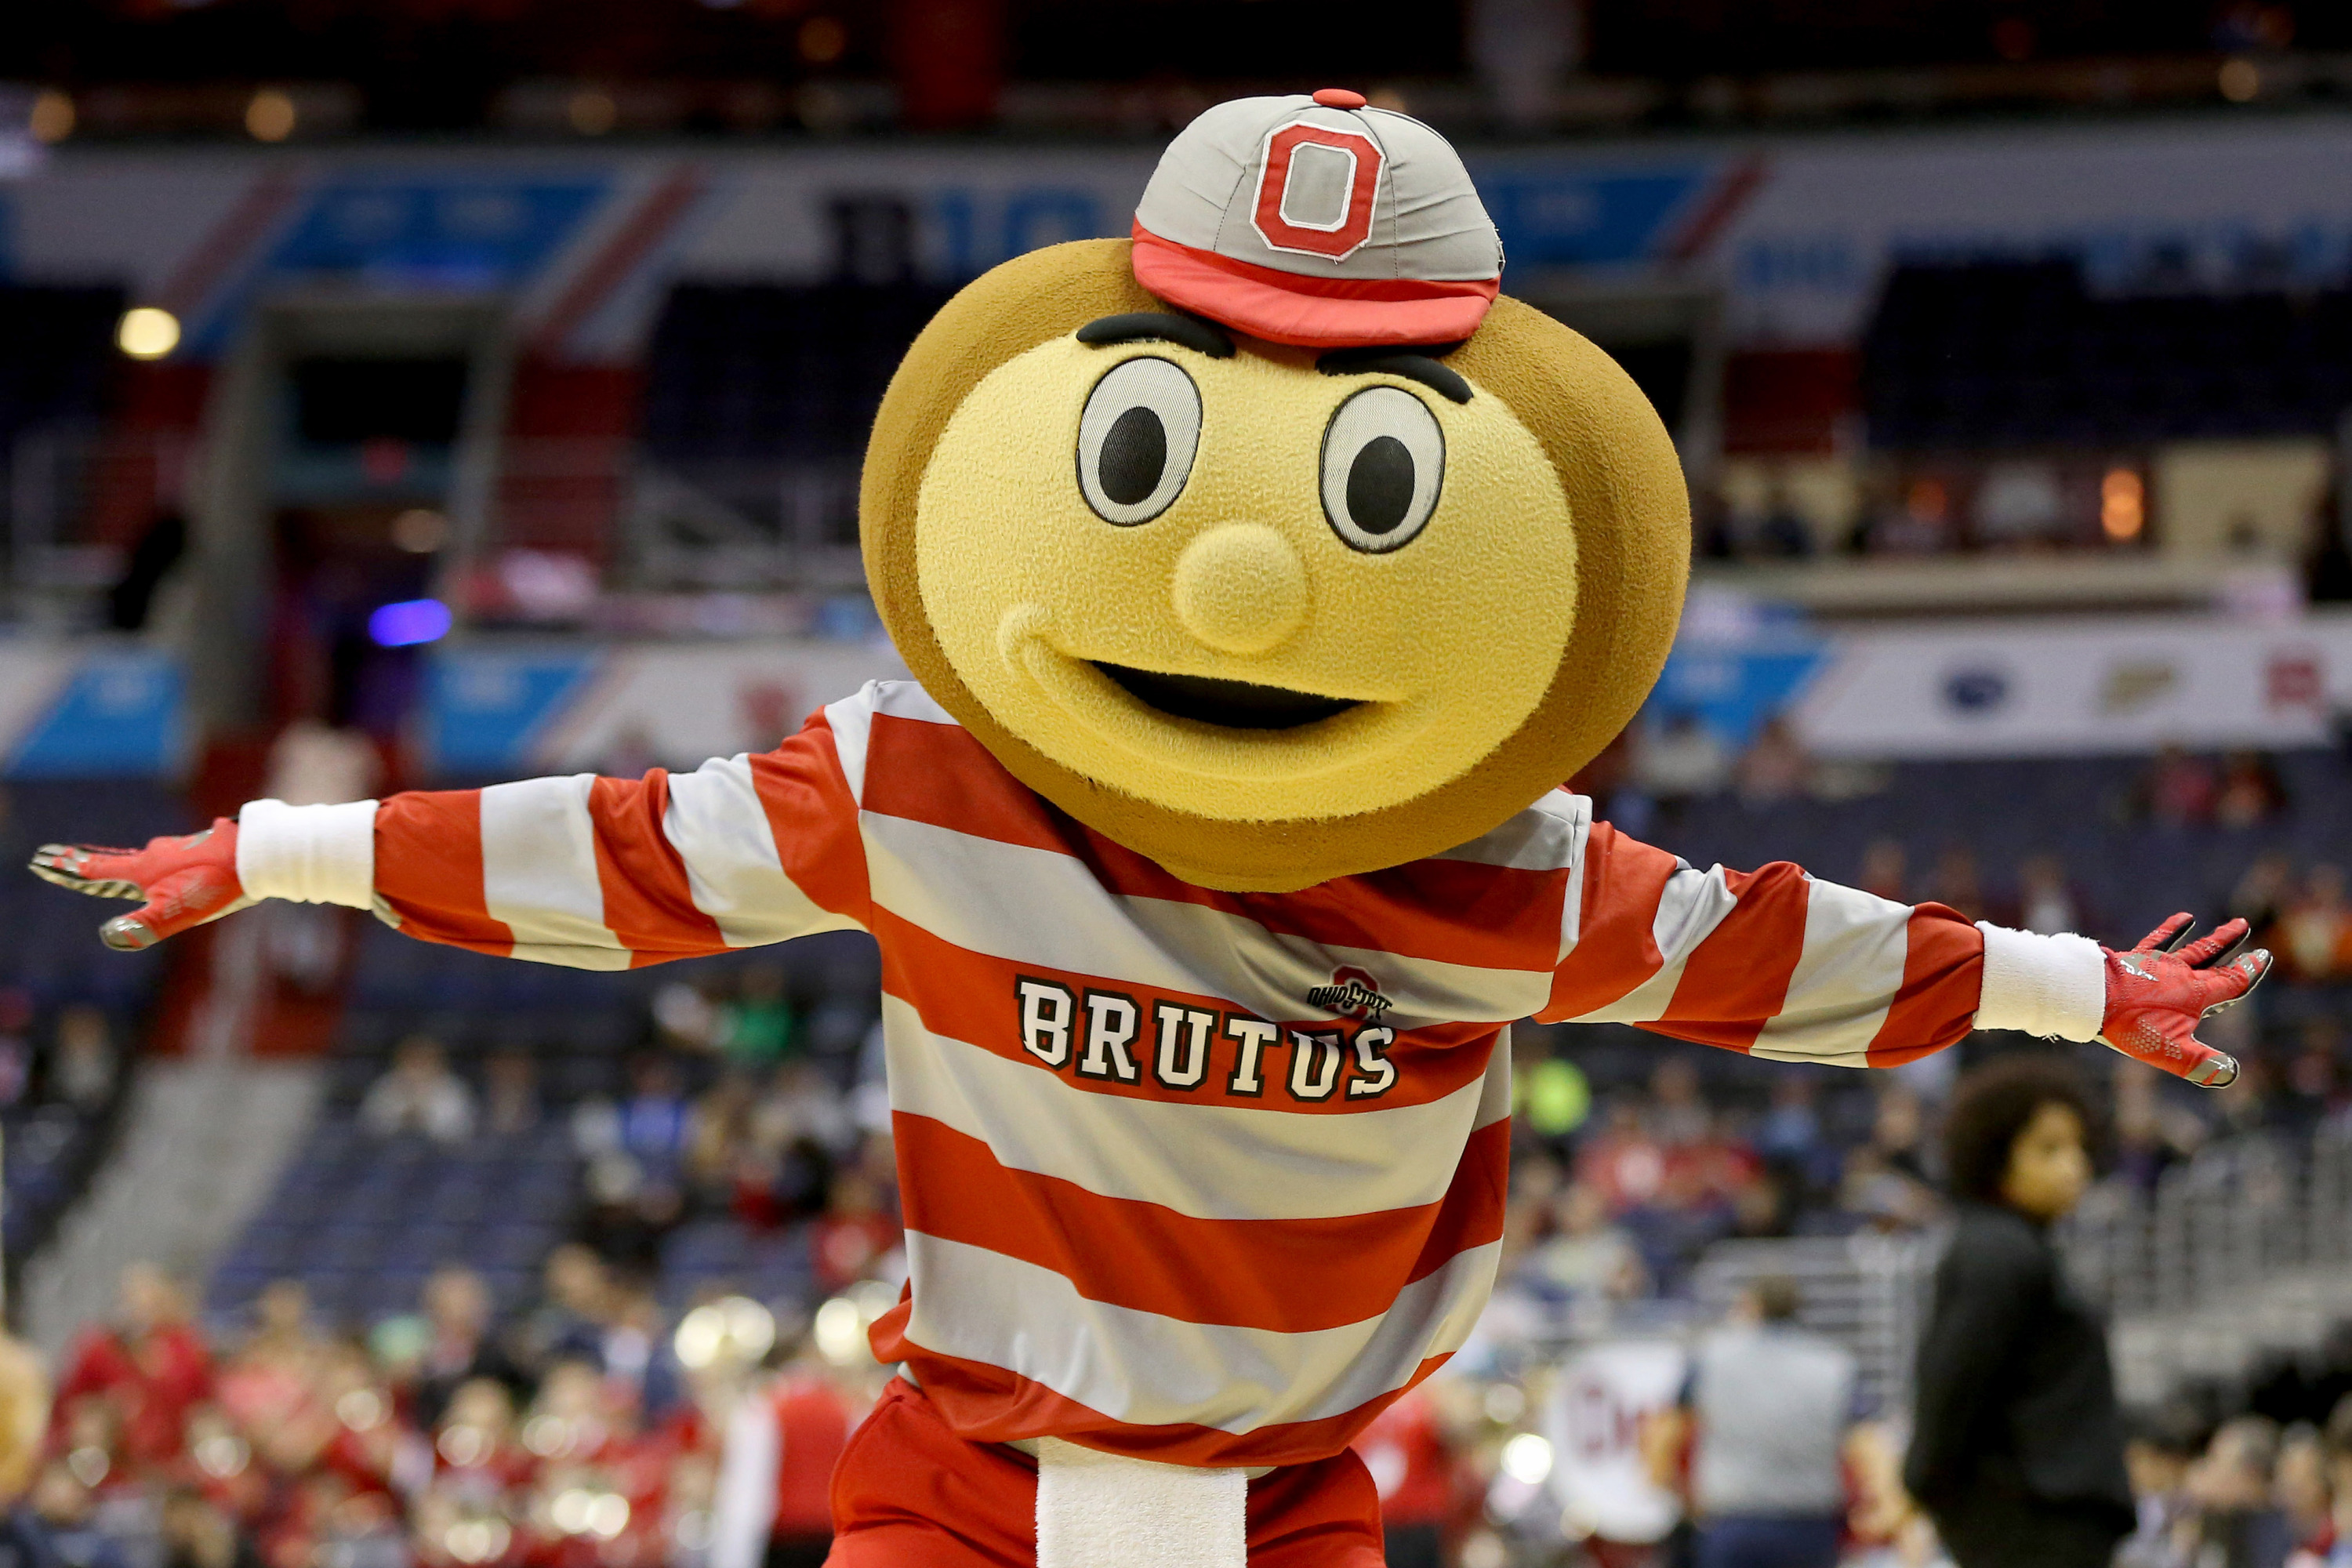 Ohio State Buckeyes mascot Brutus dances on the court during a timeout against the Rutgers Scarlet Knights in the second half during the Big Ten Conference Tournament at Verizon Center. The Scarlet Knights won 66-57.  Geoff Burke-USA TODAY Sports